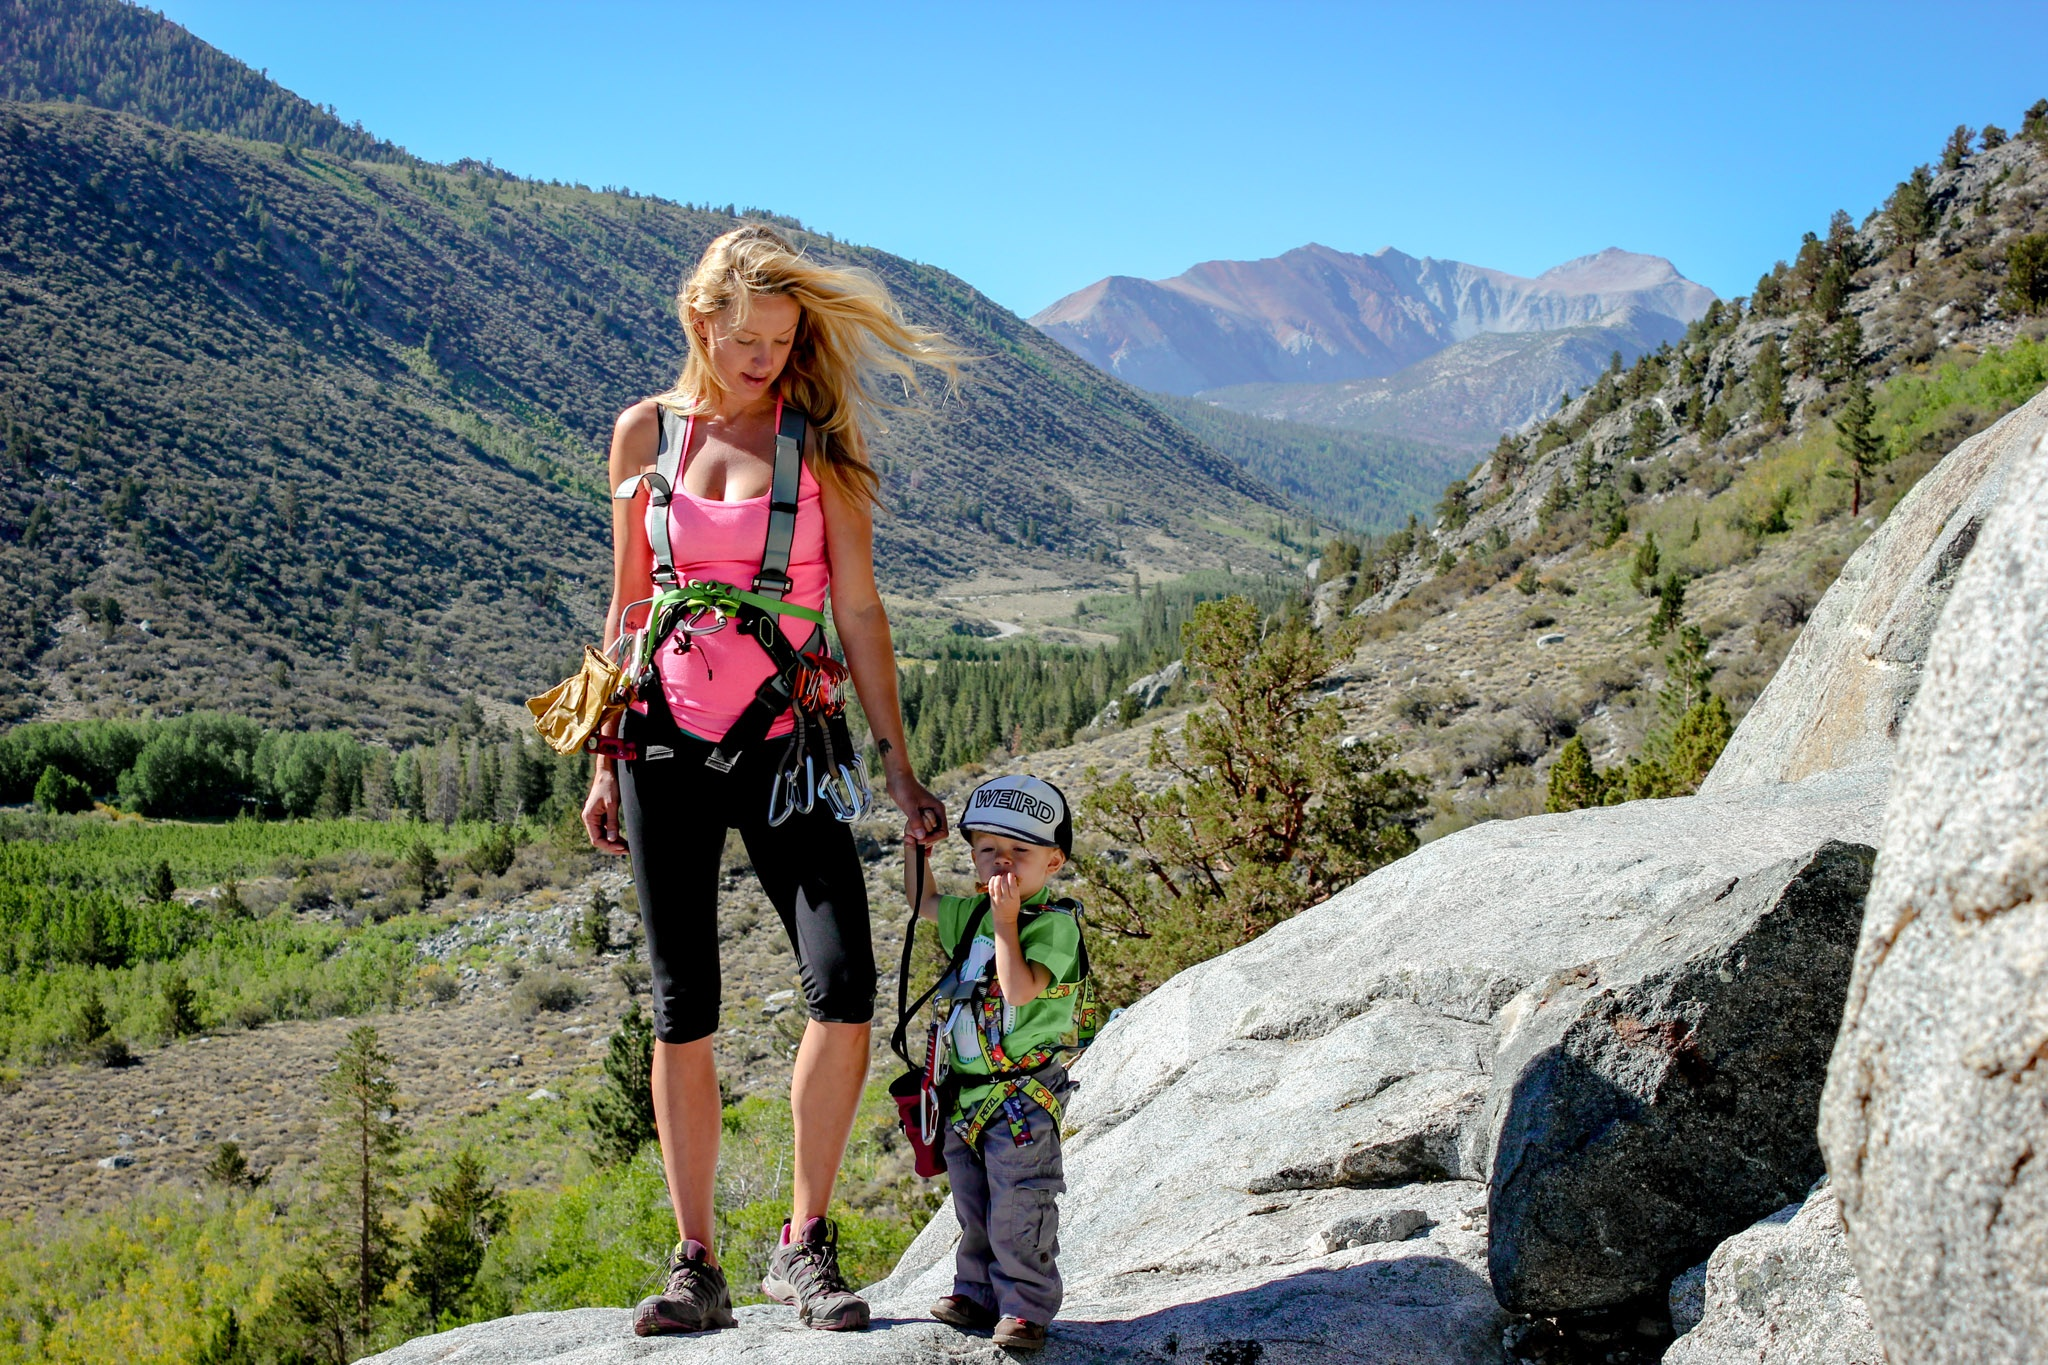 Shannon Robertson and her children regularly camp and hike in the Sierra Mountains. Photo courtesy of Shannon Robertson.